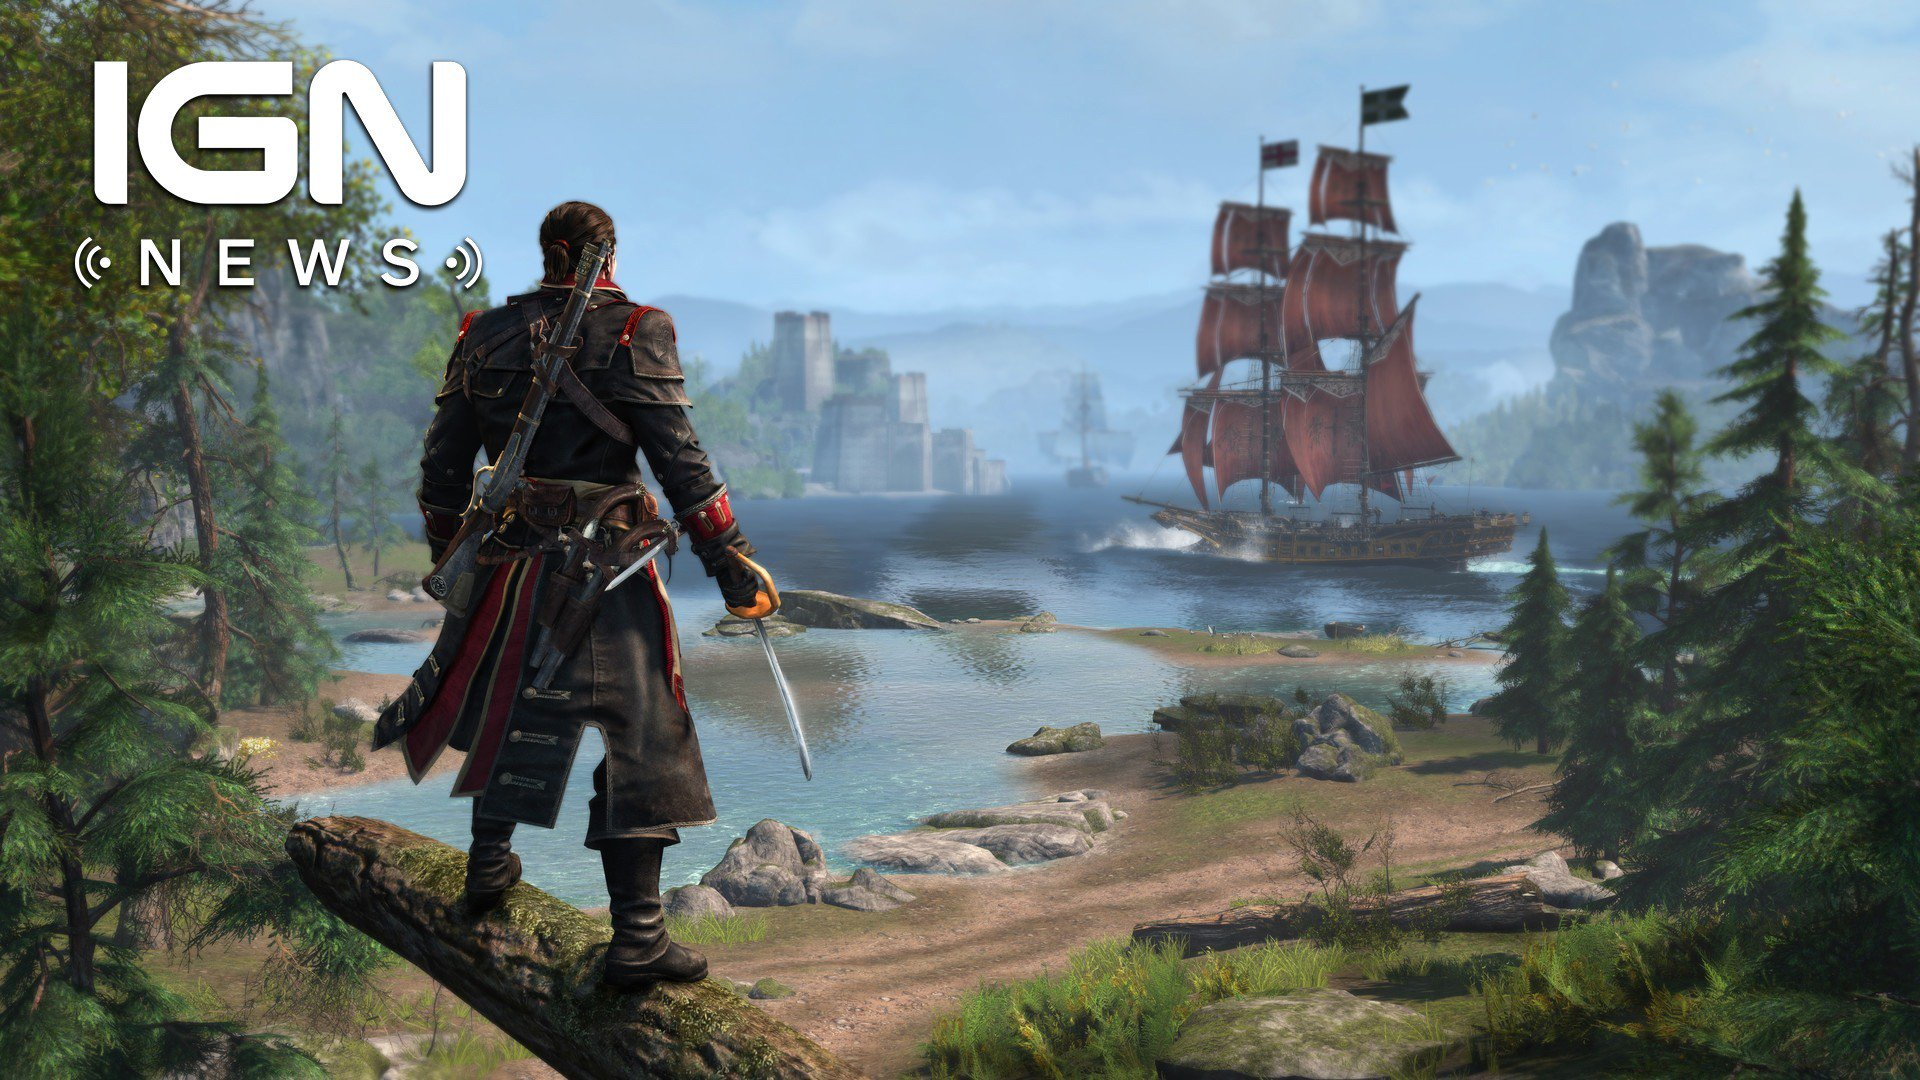 #AssassinsCreed​ Rogue Remastered is coming!!!  Full story: https://t.co/f2cDy7uwKi https://t.co/tdr37CYB84